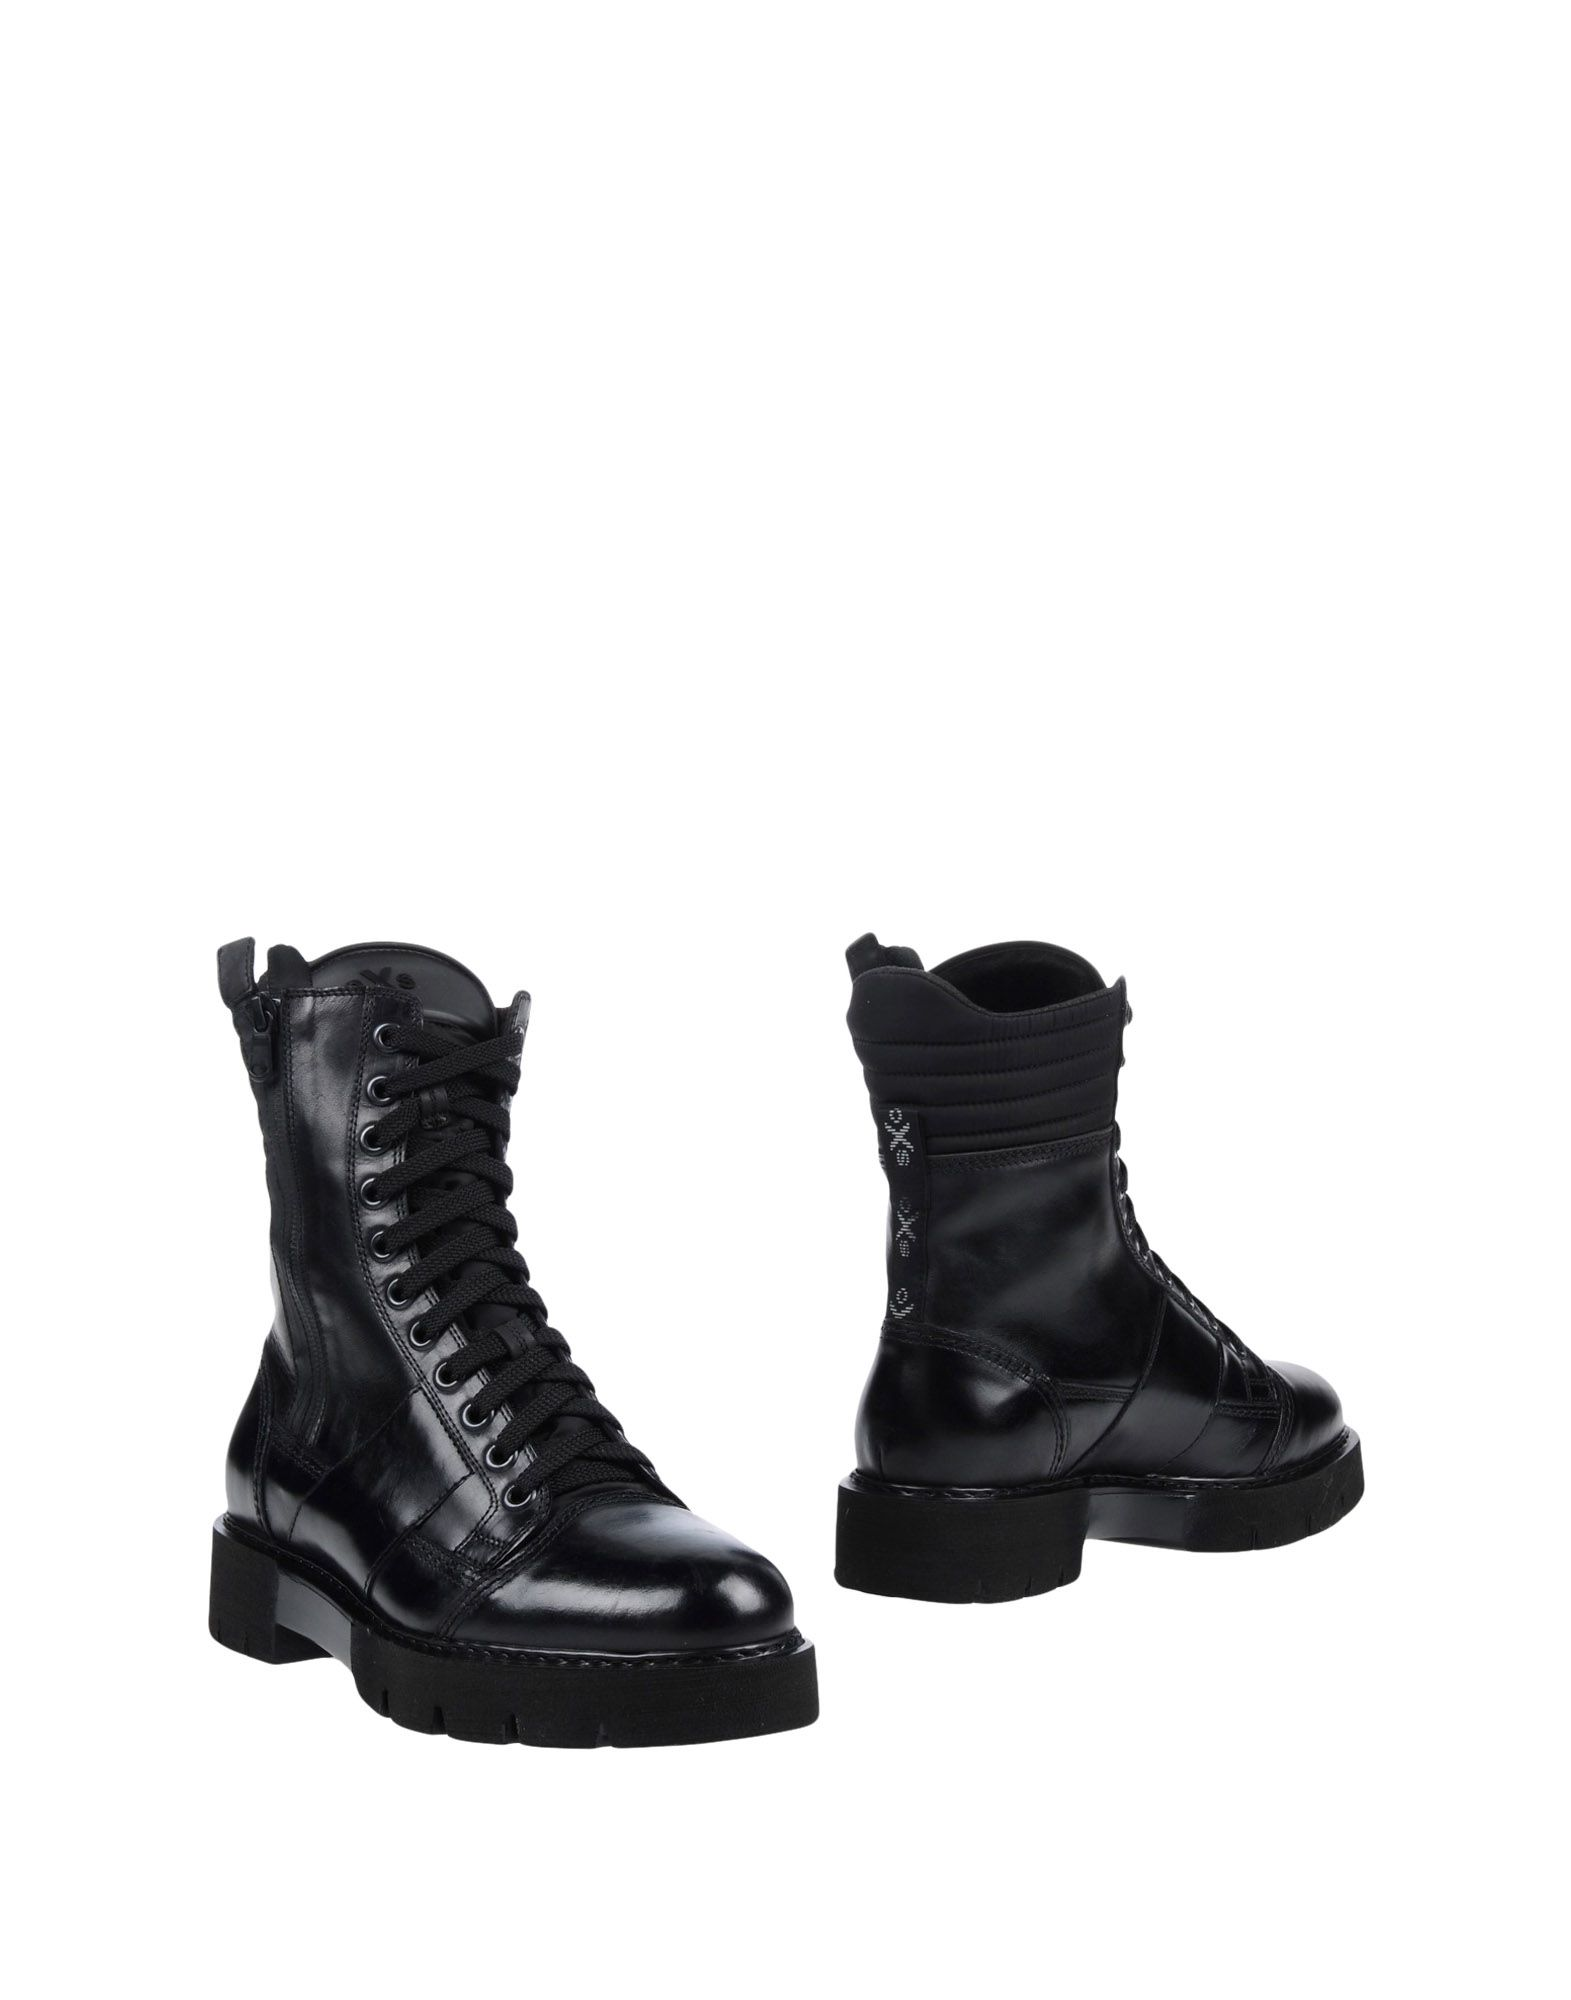 Bottine O.X.S. Femme - Bottines O.X.S. sur